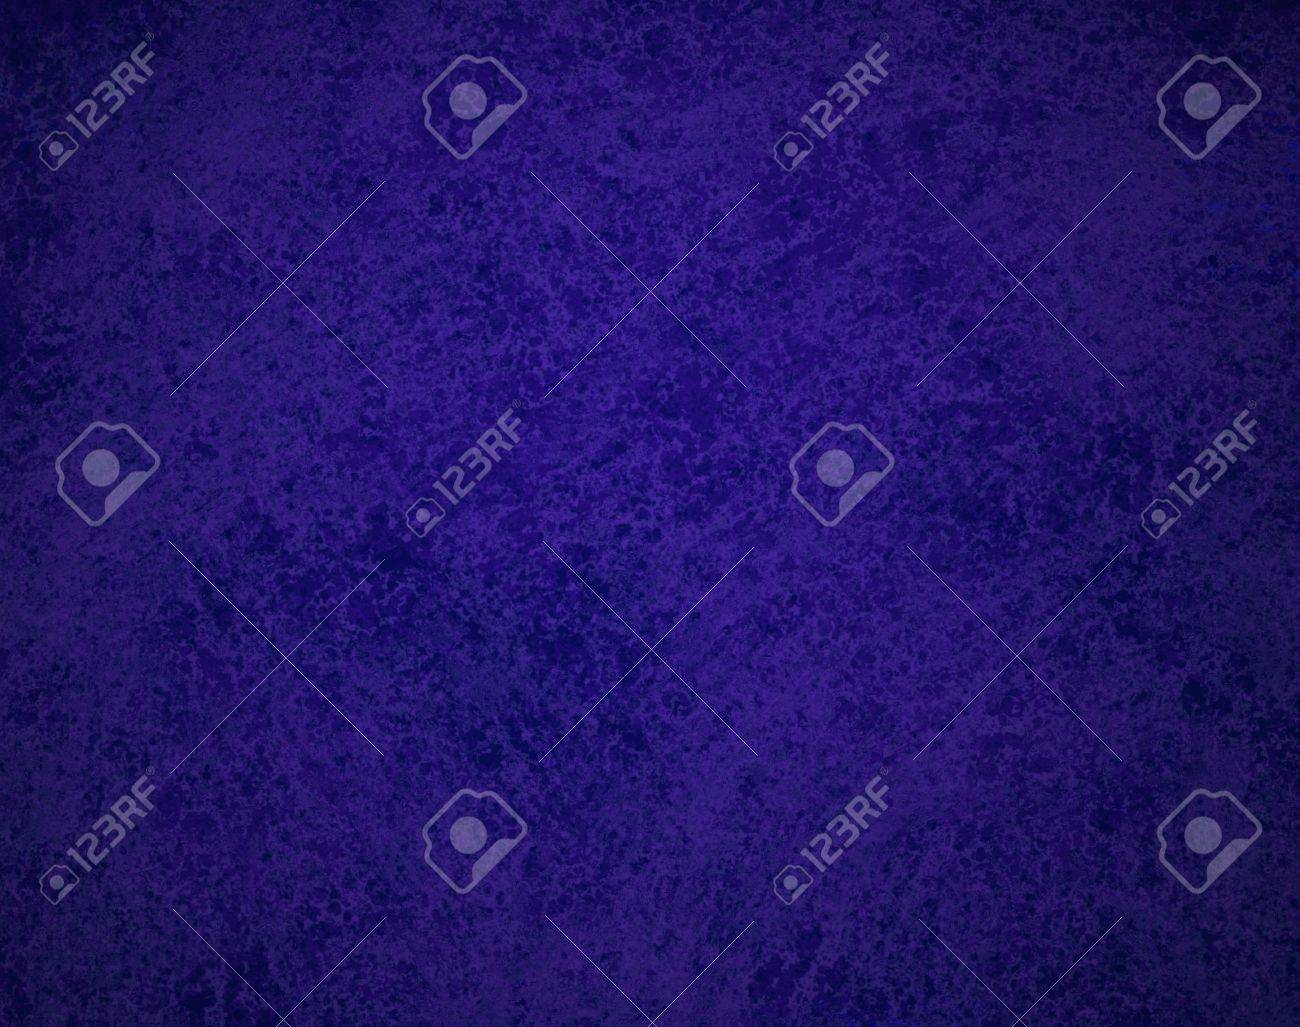 abstract blue background with old black vintage grunge background texture, grungy sponge design on border, blue paper wallpaper for brochure background or web template background or book cover Stock Photo - 14674418